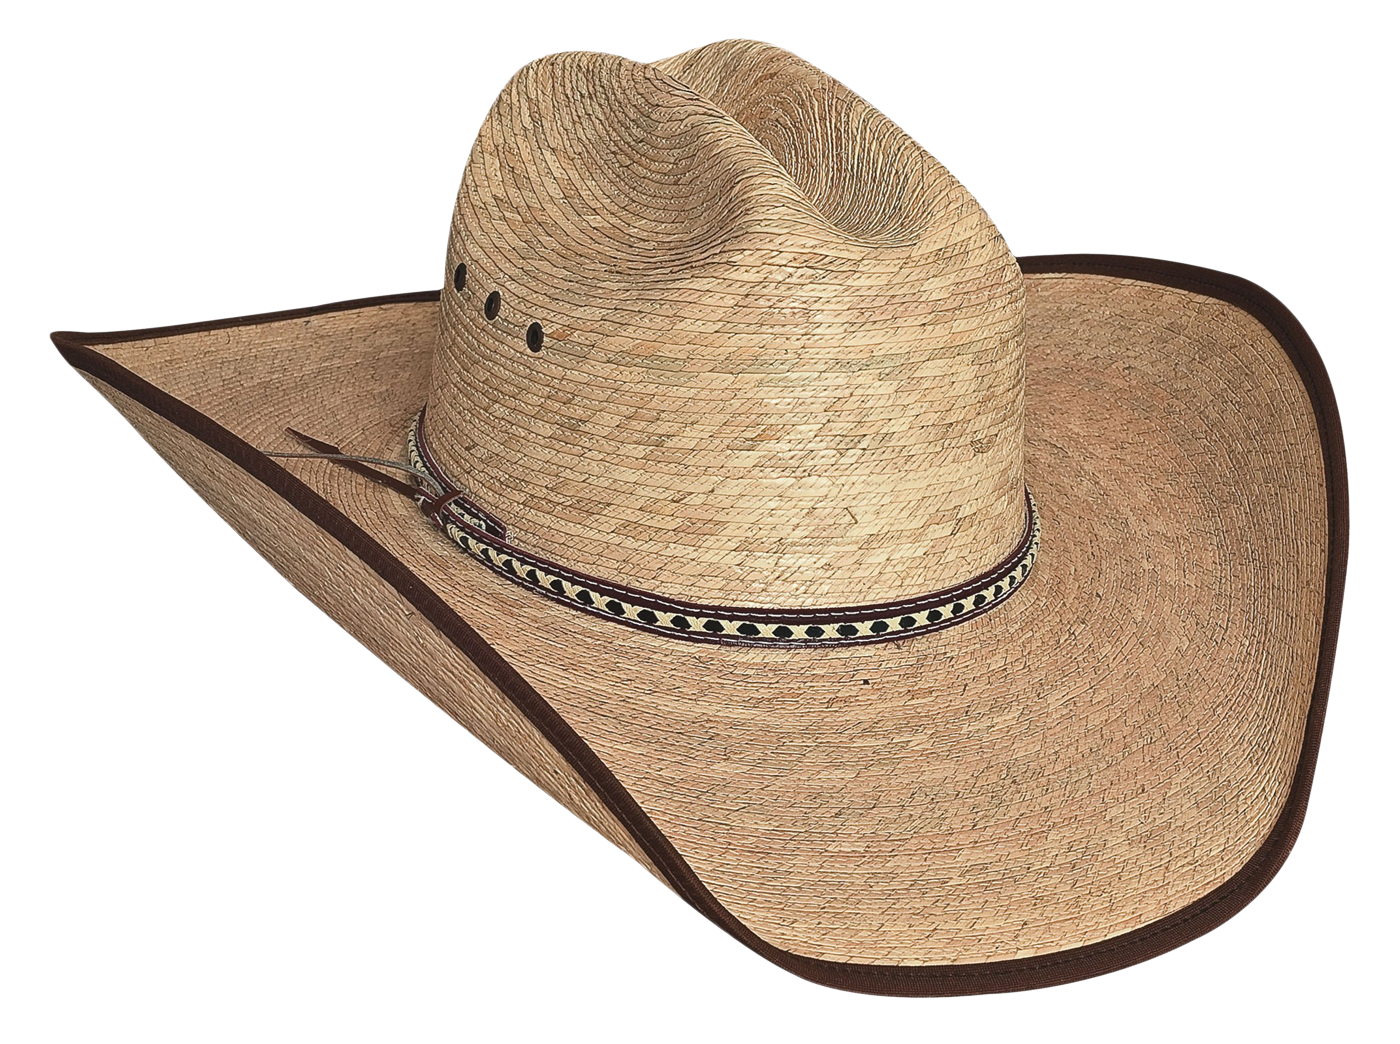 Cowboy Hat Png Transparent : Download cowboy hat png image with transparent background.